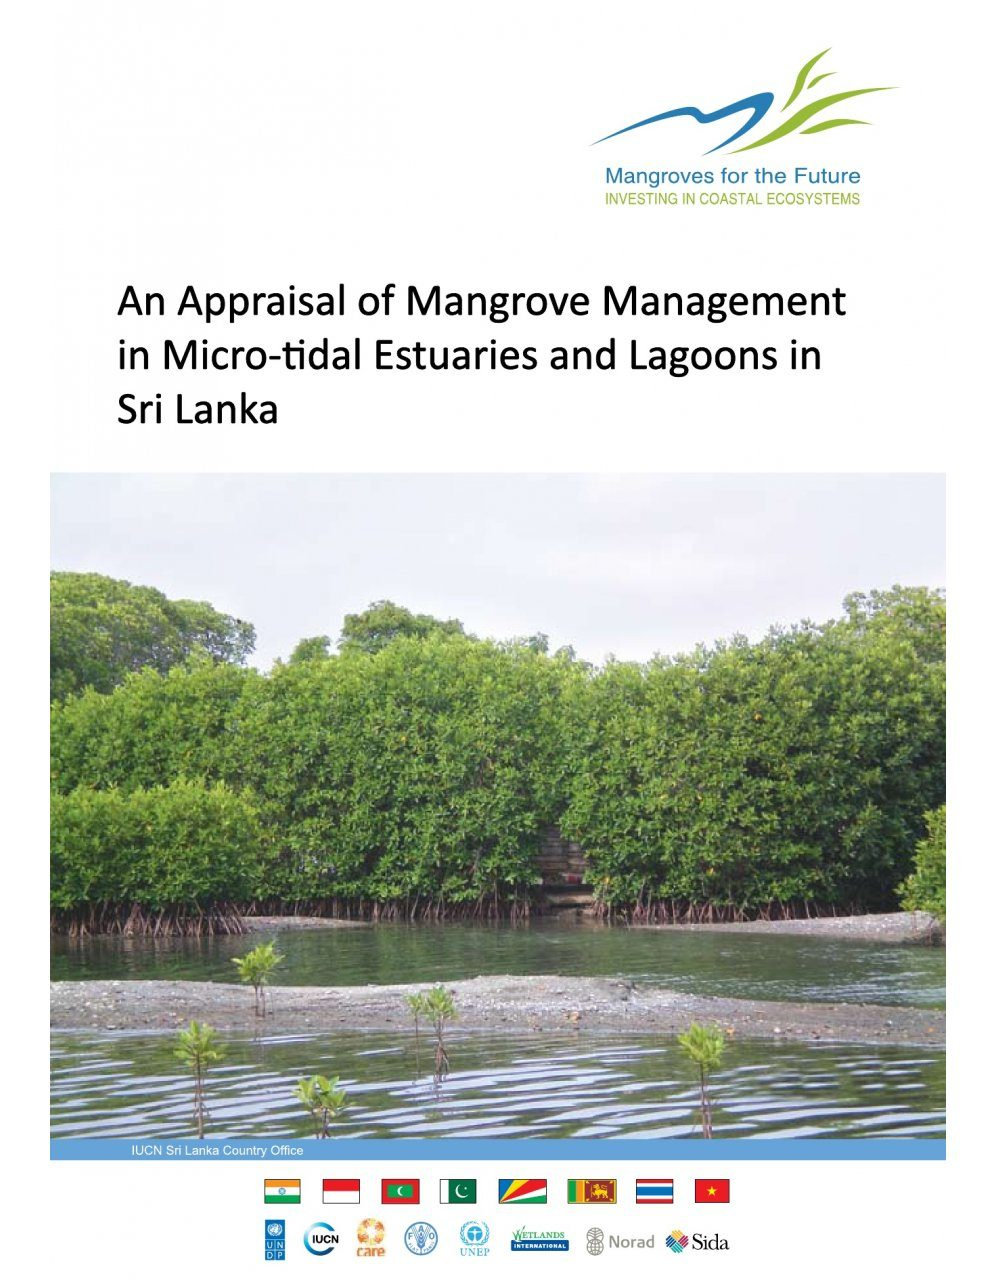 An Appraisal of Mangrove Management in Microtidal Estuaries and Lagoons in Sri Lanka